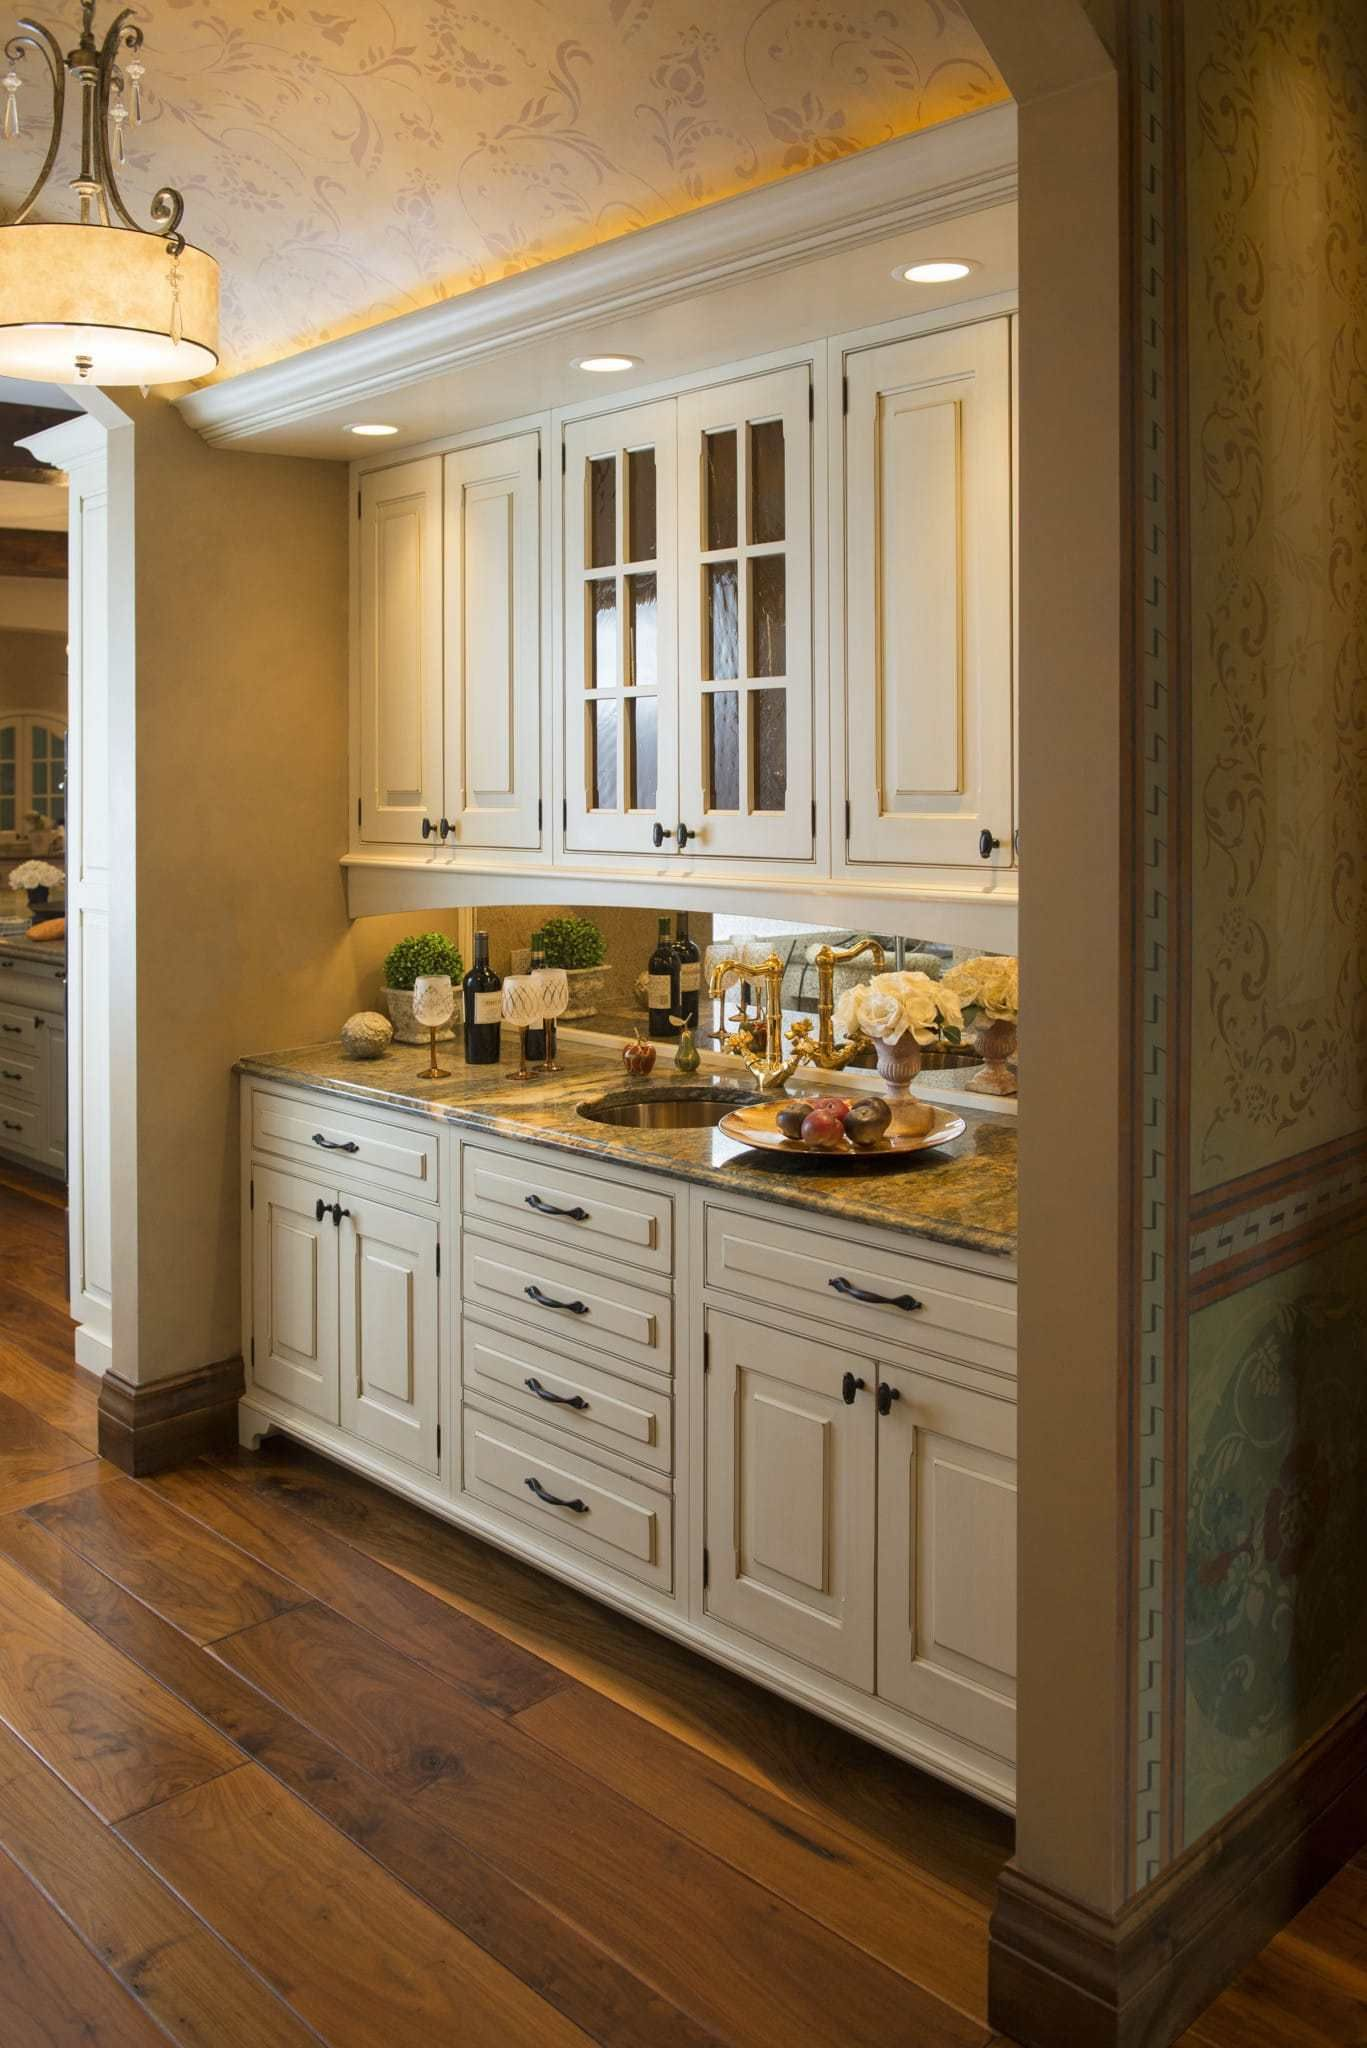 Dutch Made Cabinets Kcma Certified Responsible And Sustainable Cabinets Sustainable Kitchen Kitchen Custom Cabinetry